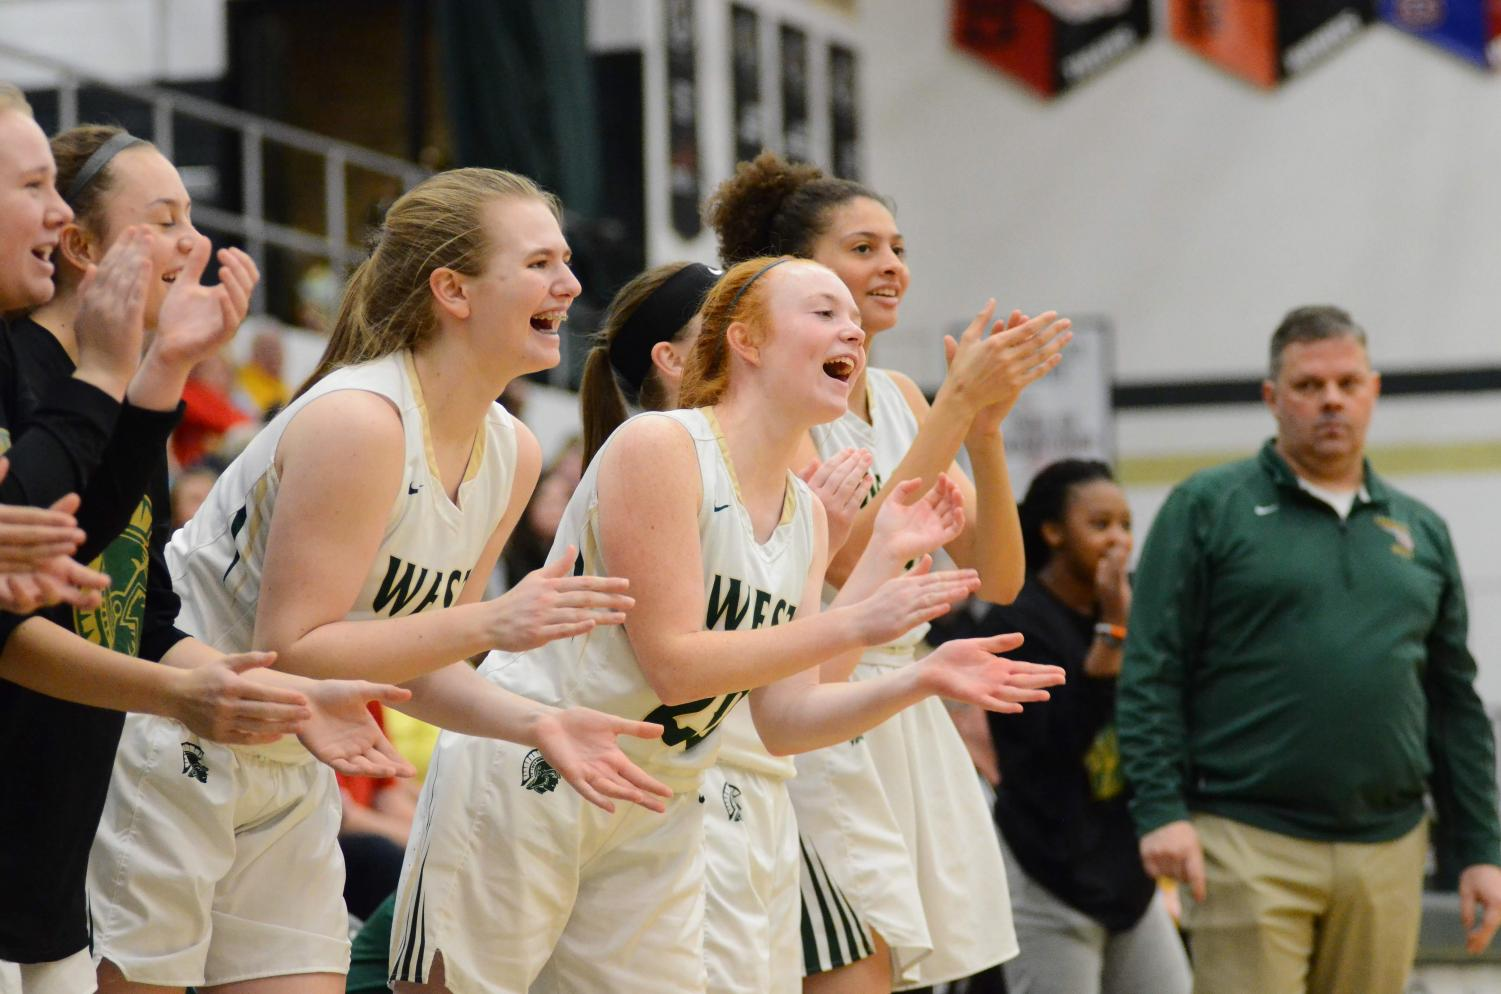 Liv Williams '21, Rylee Goodfellow '21, and Ana Prouty '23 cheer from the bench as Matayia Tellis makes a shot and gets two free throws off of a foul.